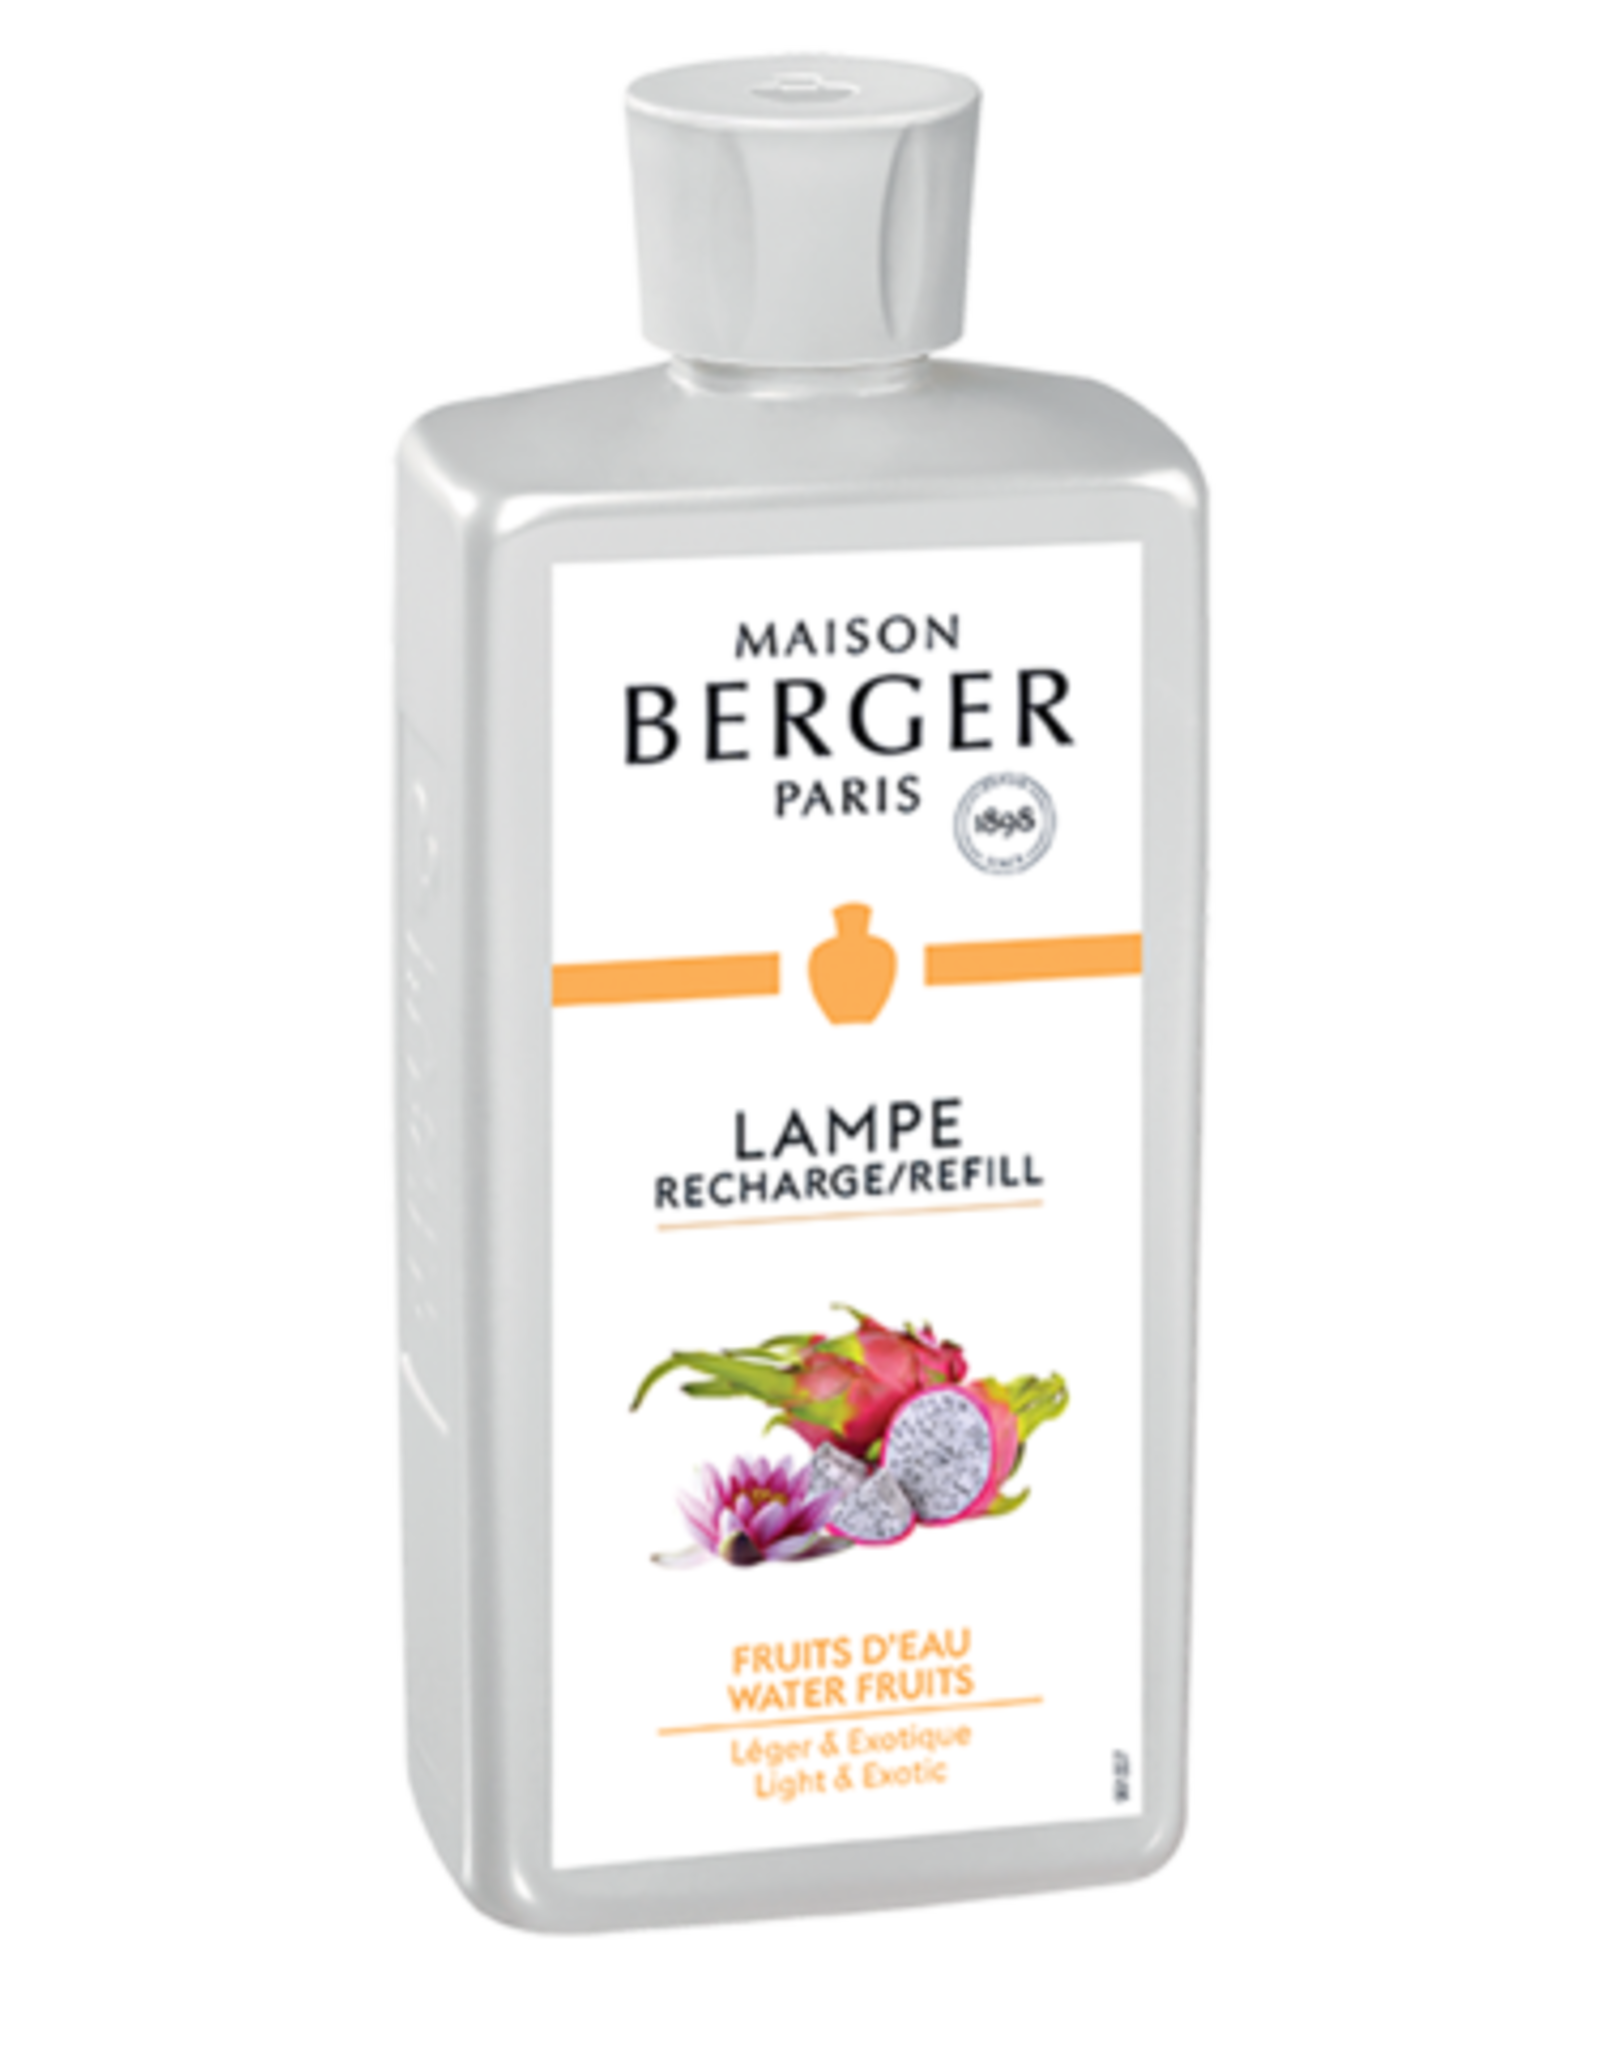 Maison Berger Fruits d'eau 500ml